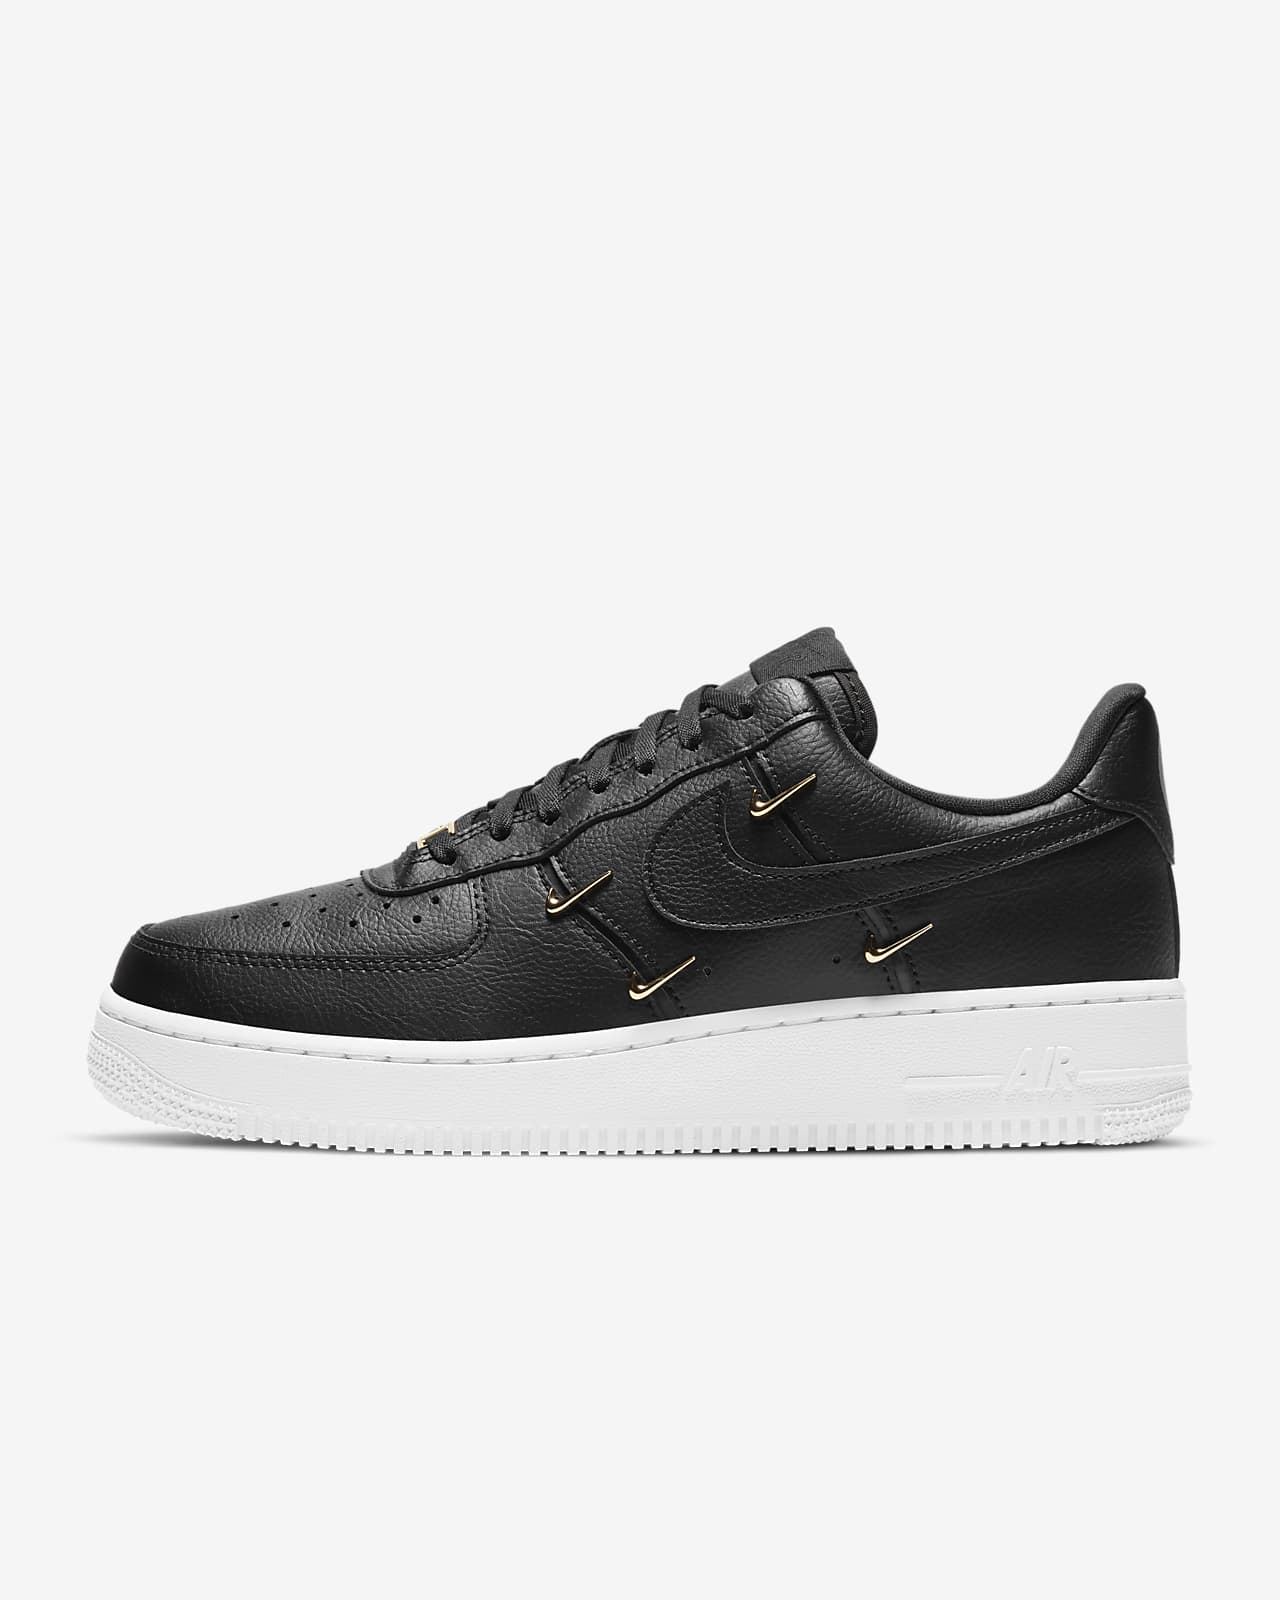 Nike Air Force 1 '07 LX Women's Shoes